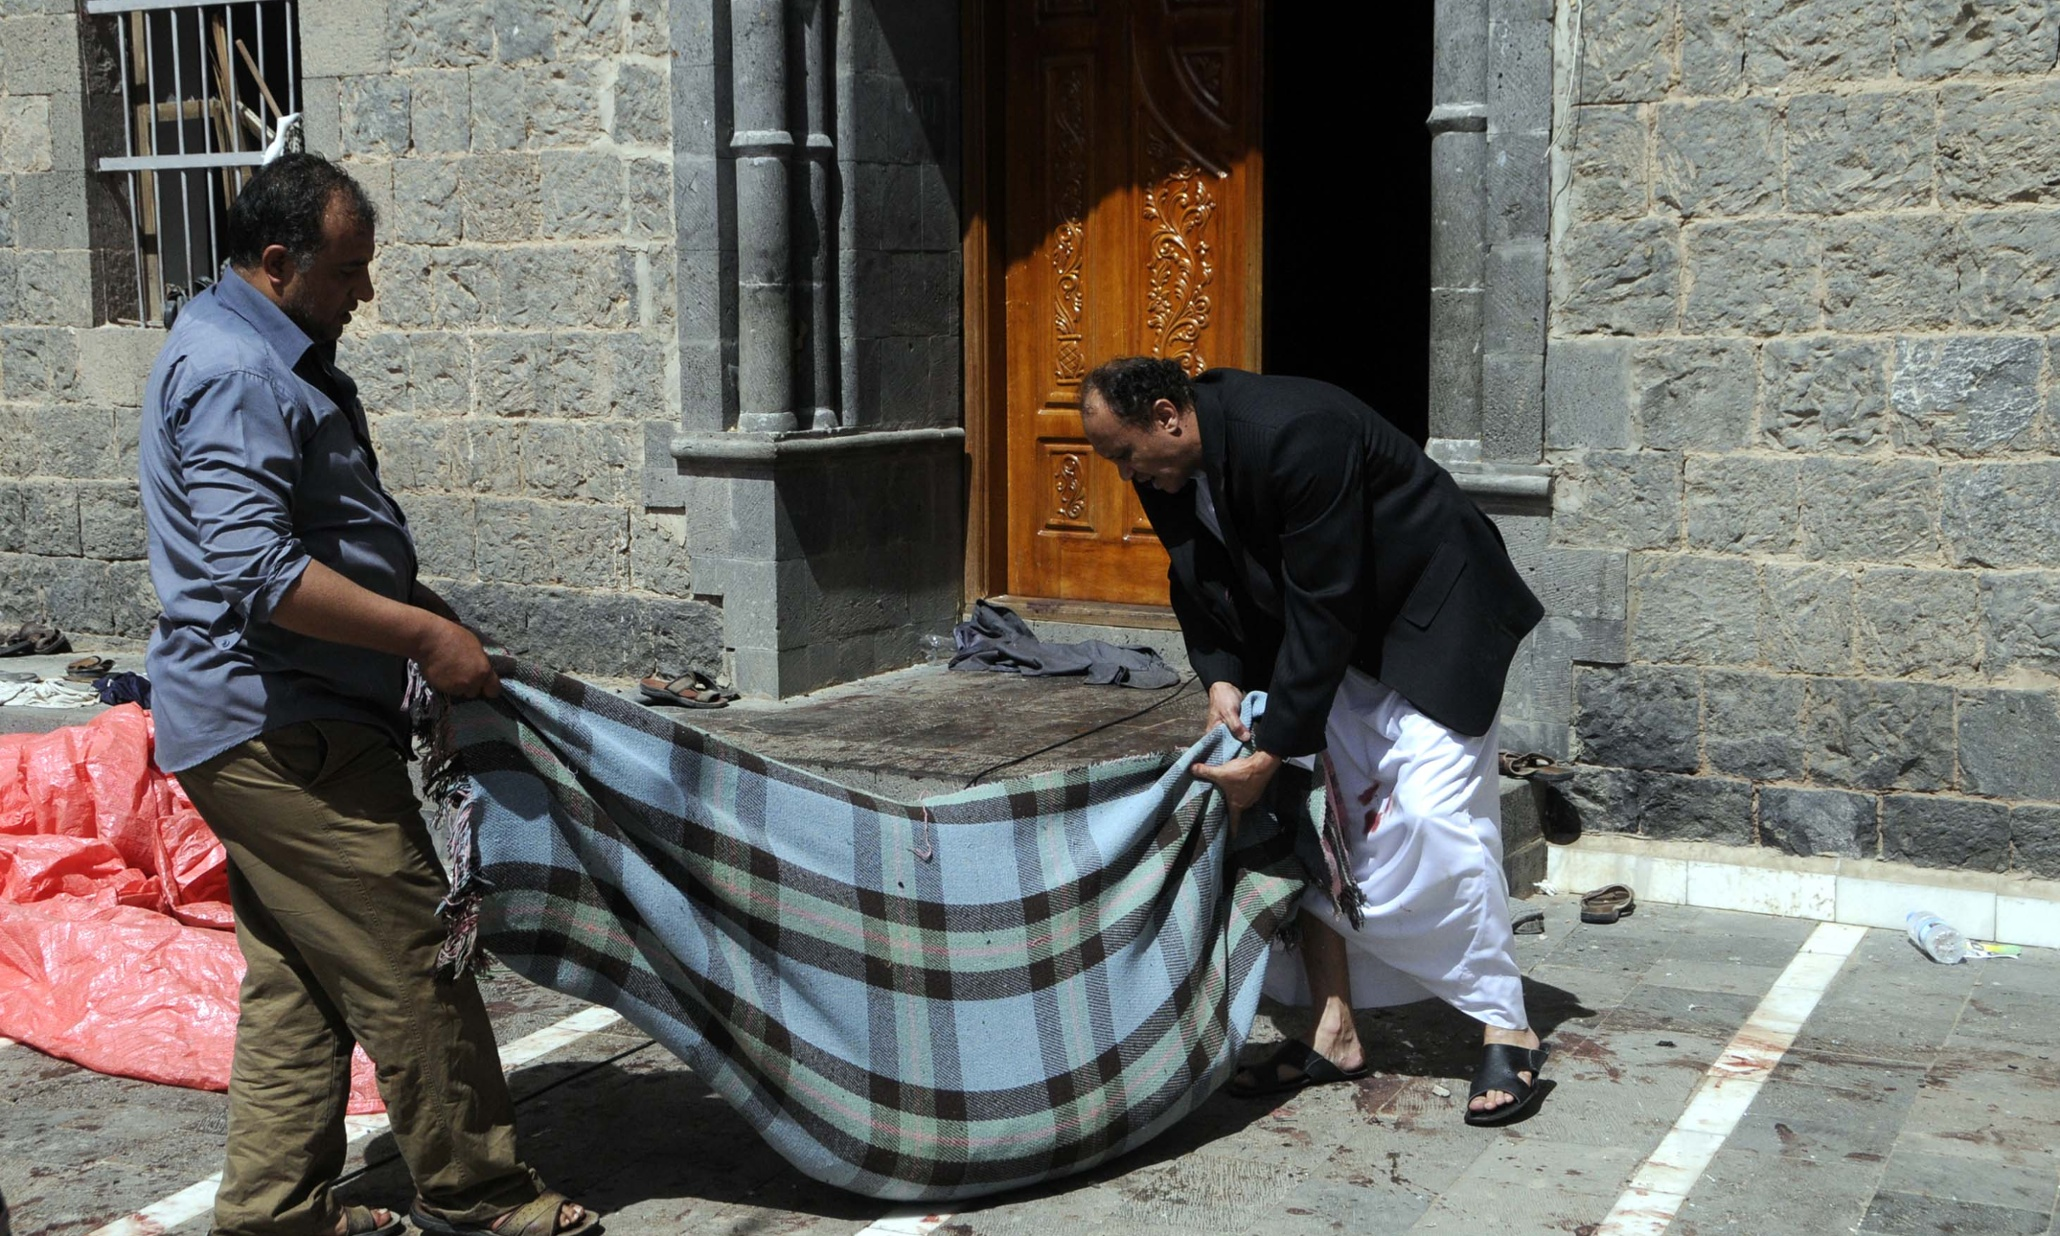 Yemen suicide bombings leave over 100 dead after mosques targeted